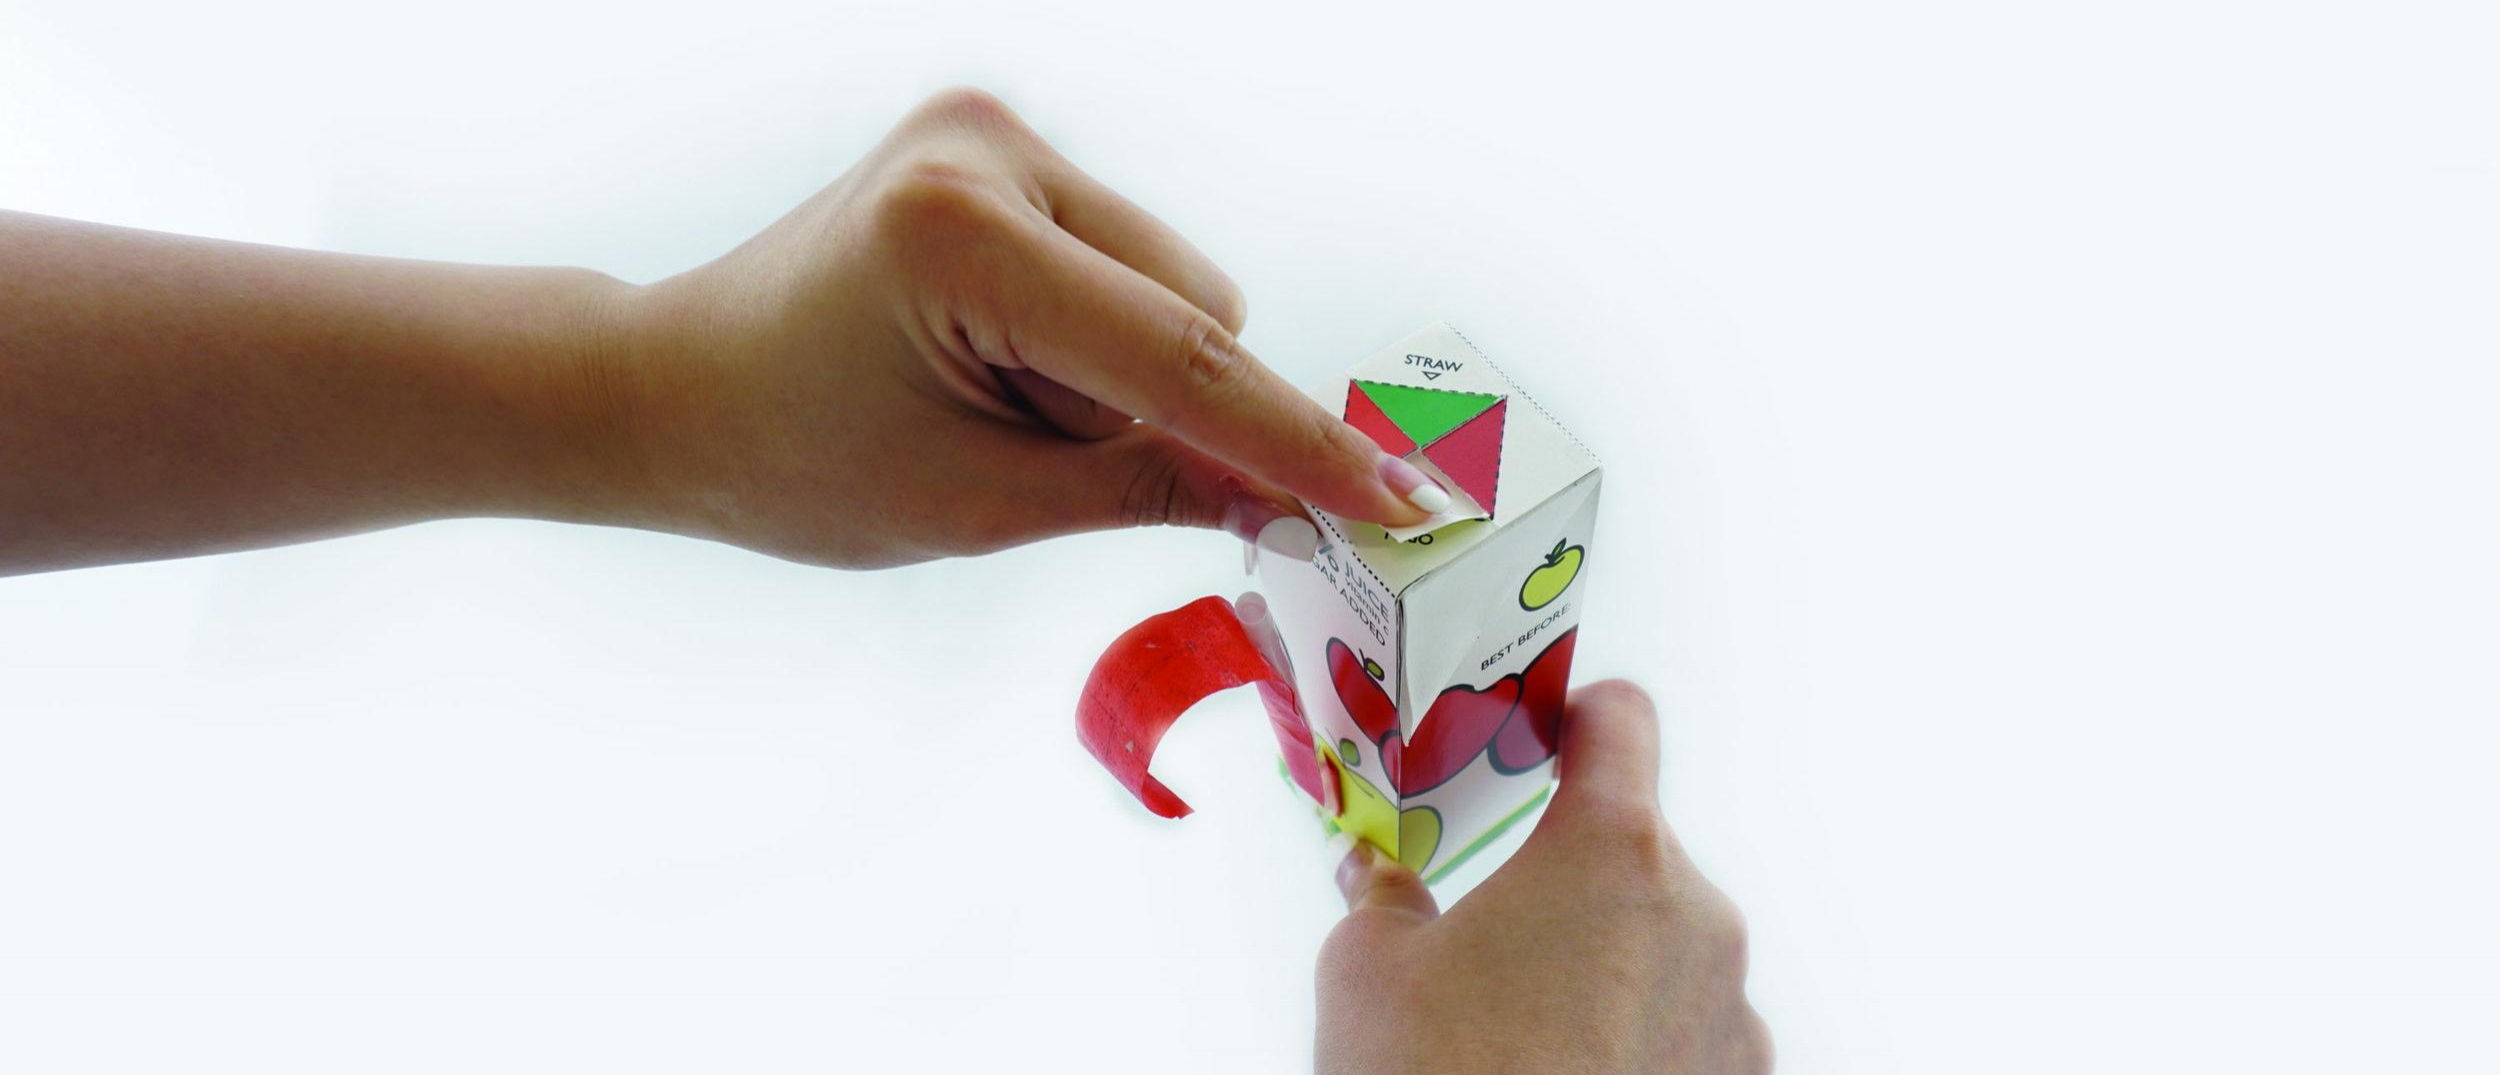 SIG tech flip n fold & colorfold | innovative aseptic juice box packaging